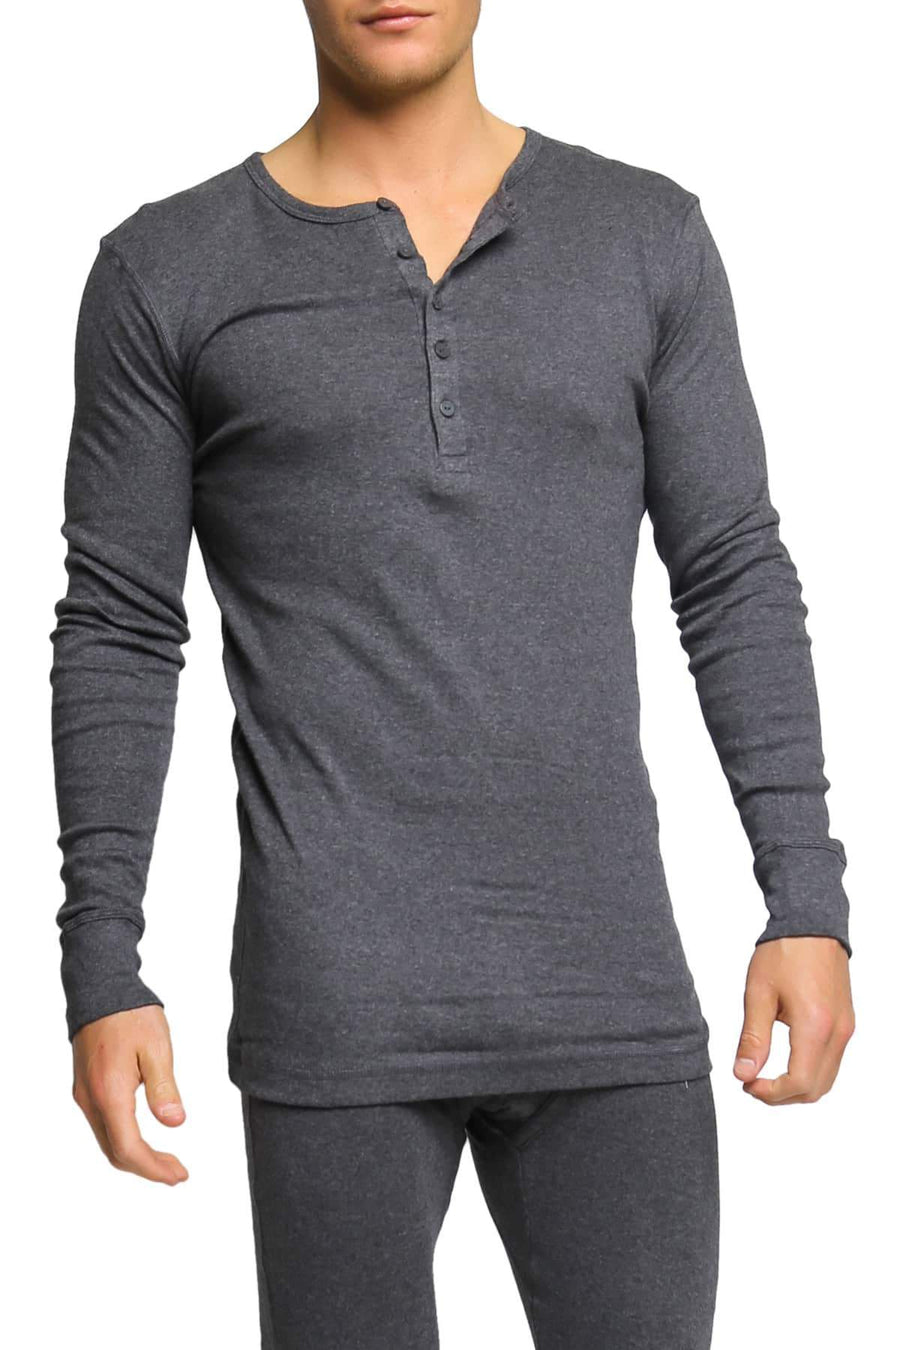 Shirts - 2(X)IST Charcoal Essential Long Sleeve Henley -   jetcube